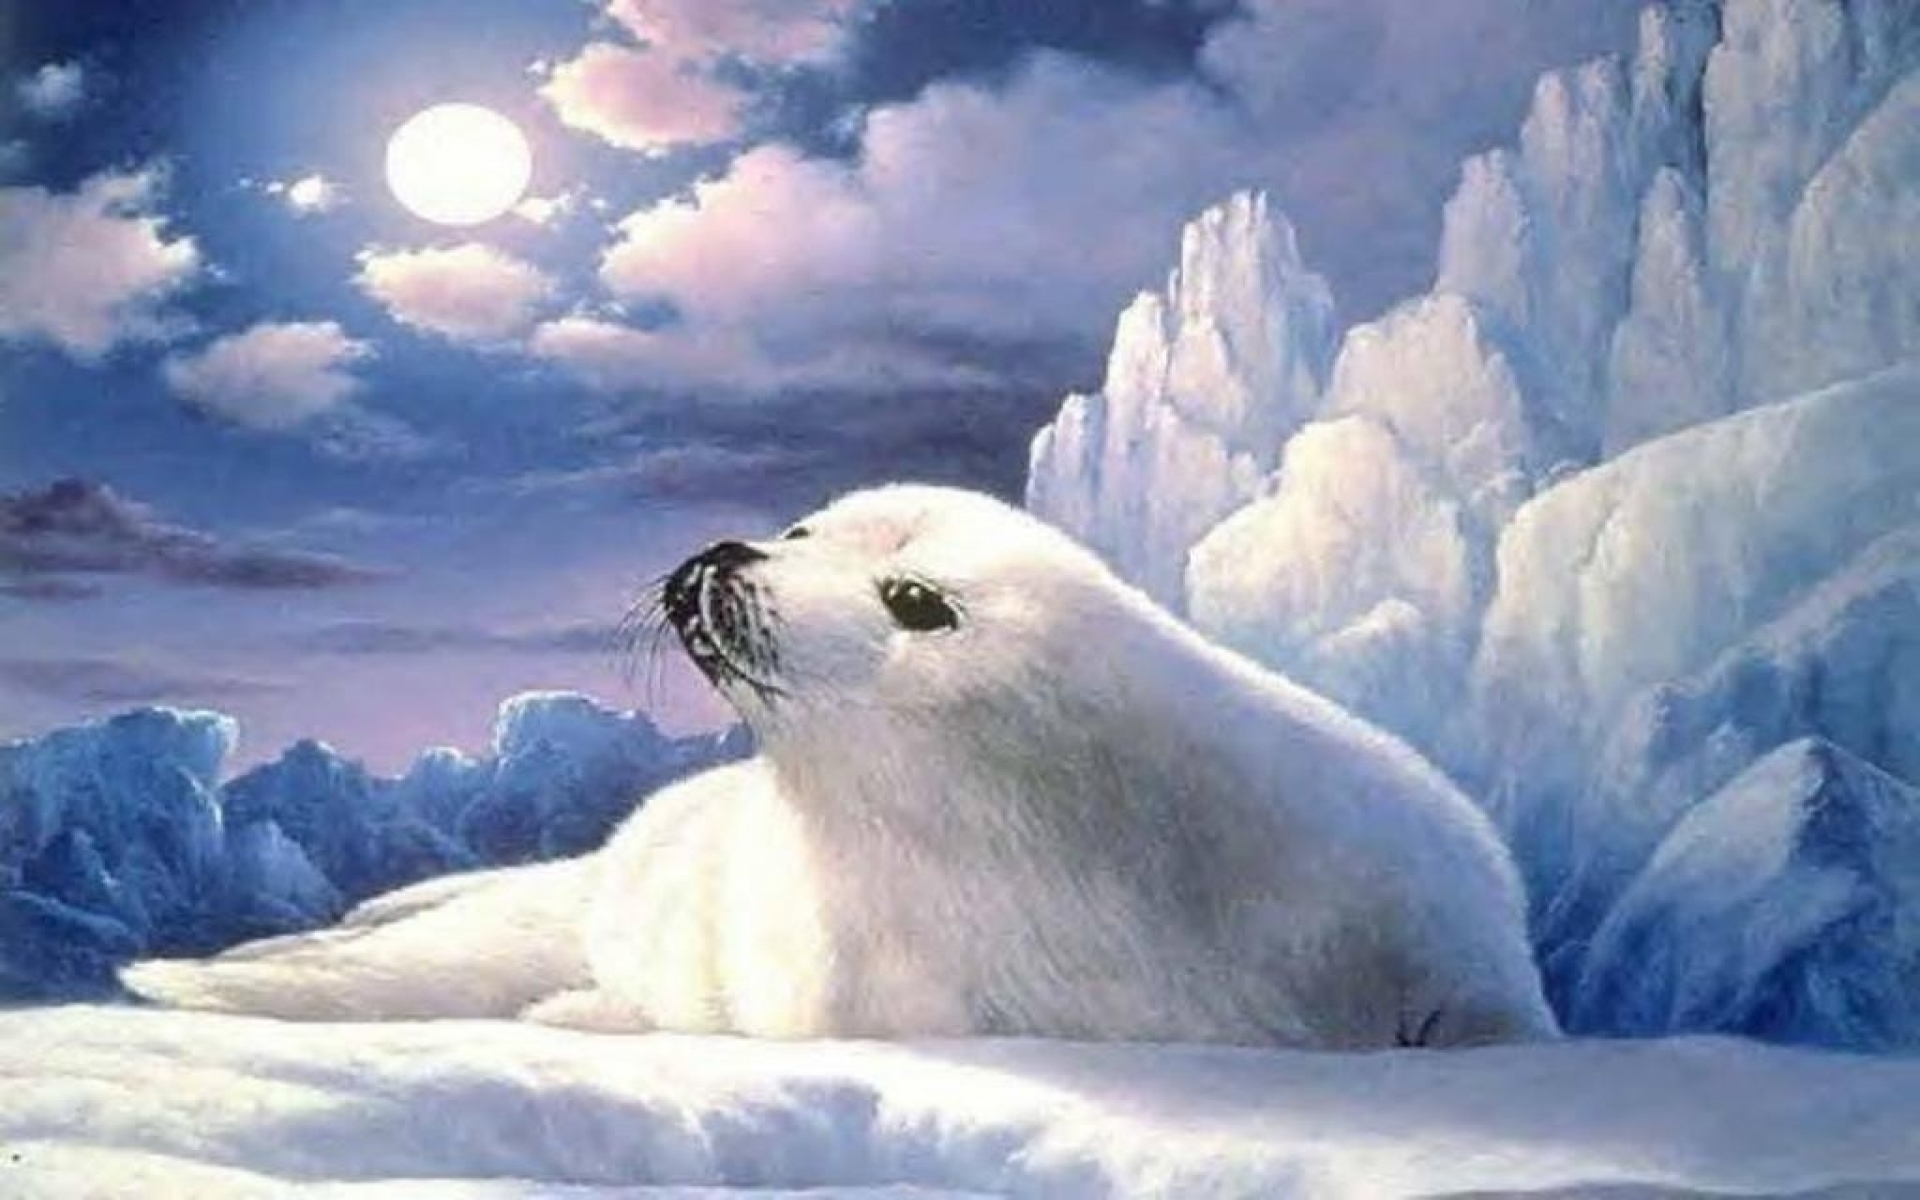 Cute Baby Seals 9361 Hd Wallpapers: Cute Lonely Seal Ice Berg Moon Wallpapers